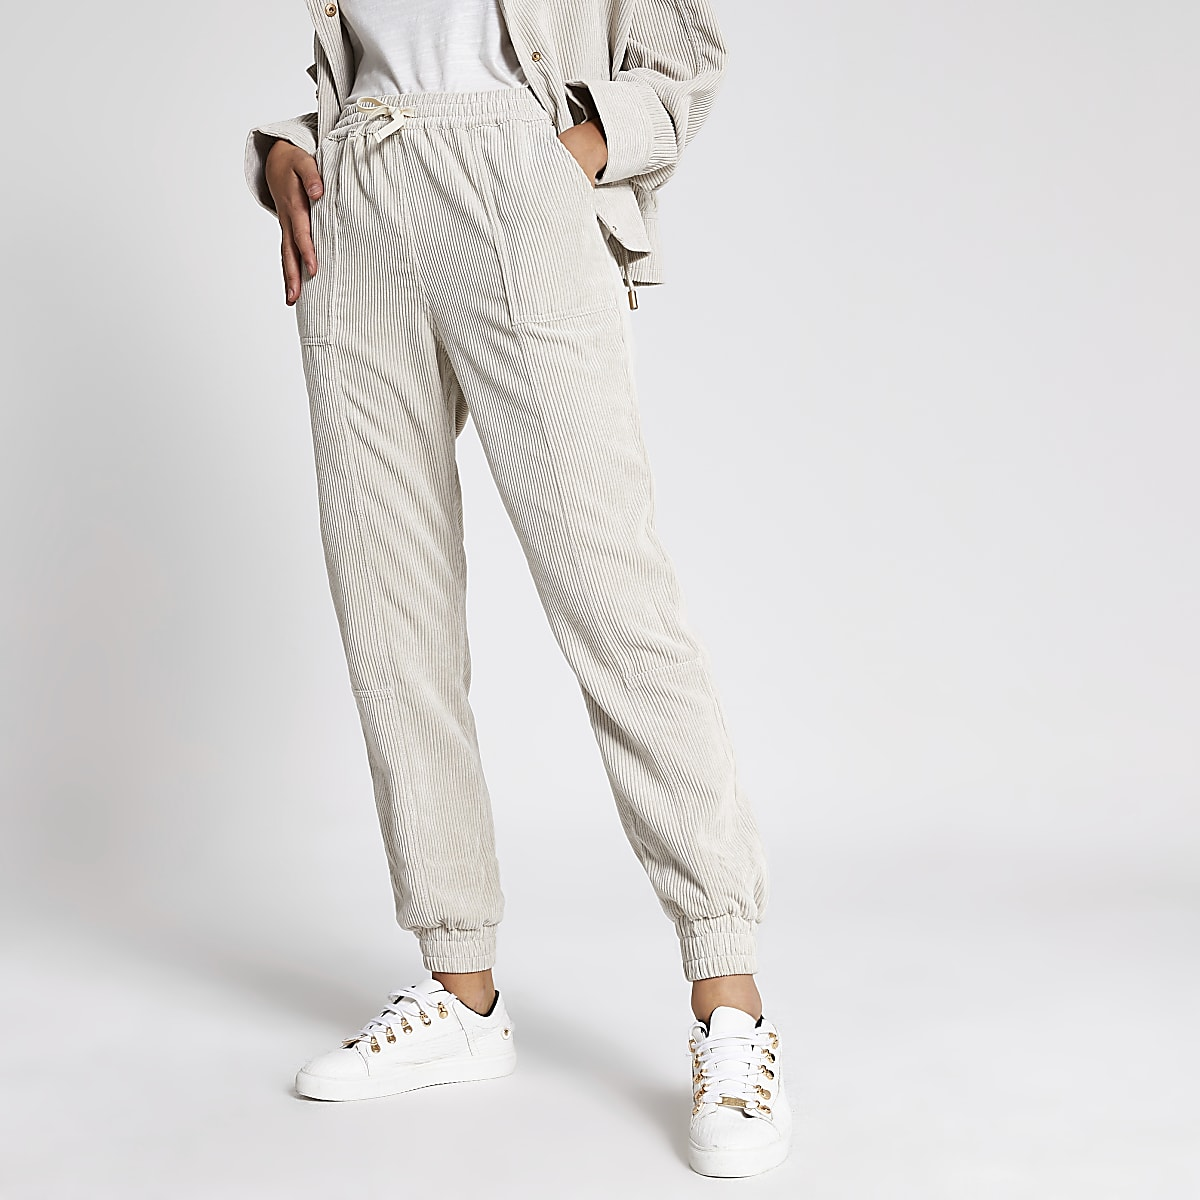 Cream corduroy jogger trousers